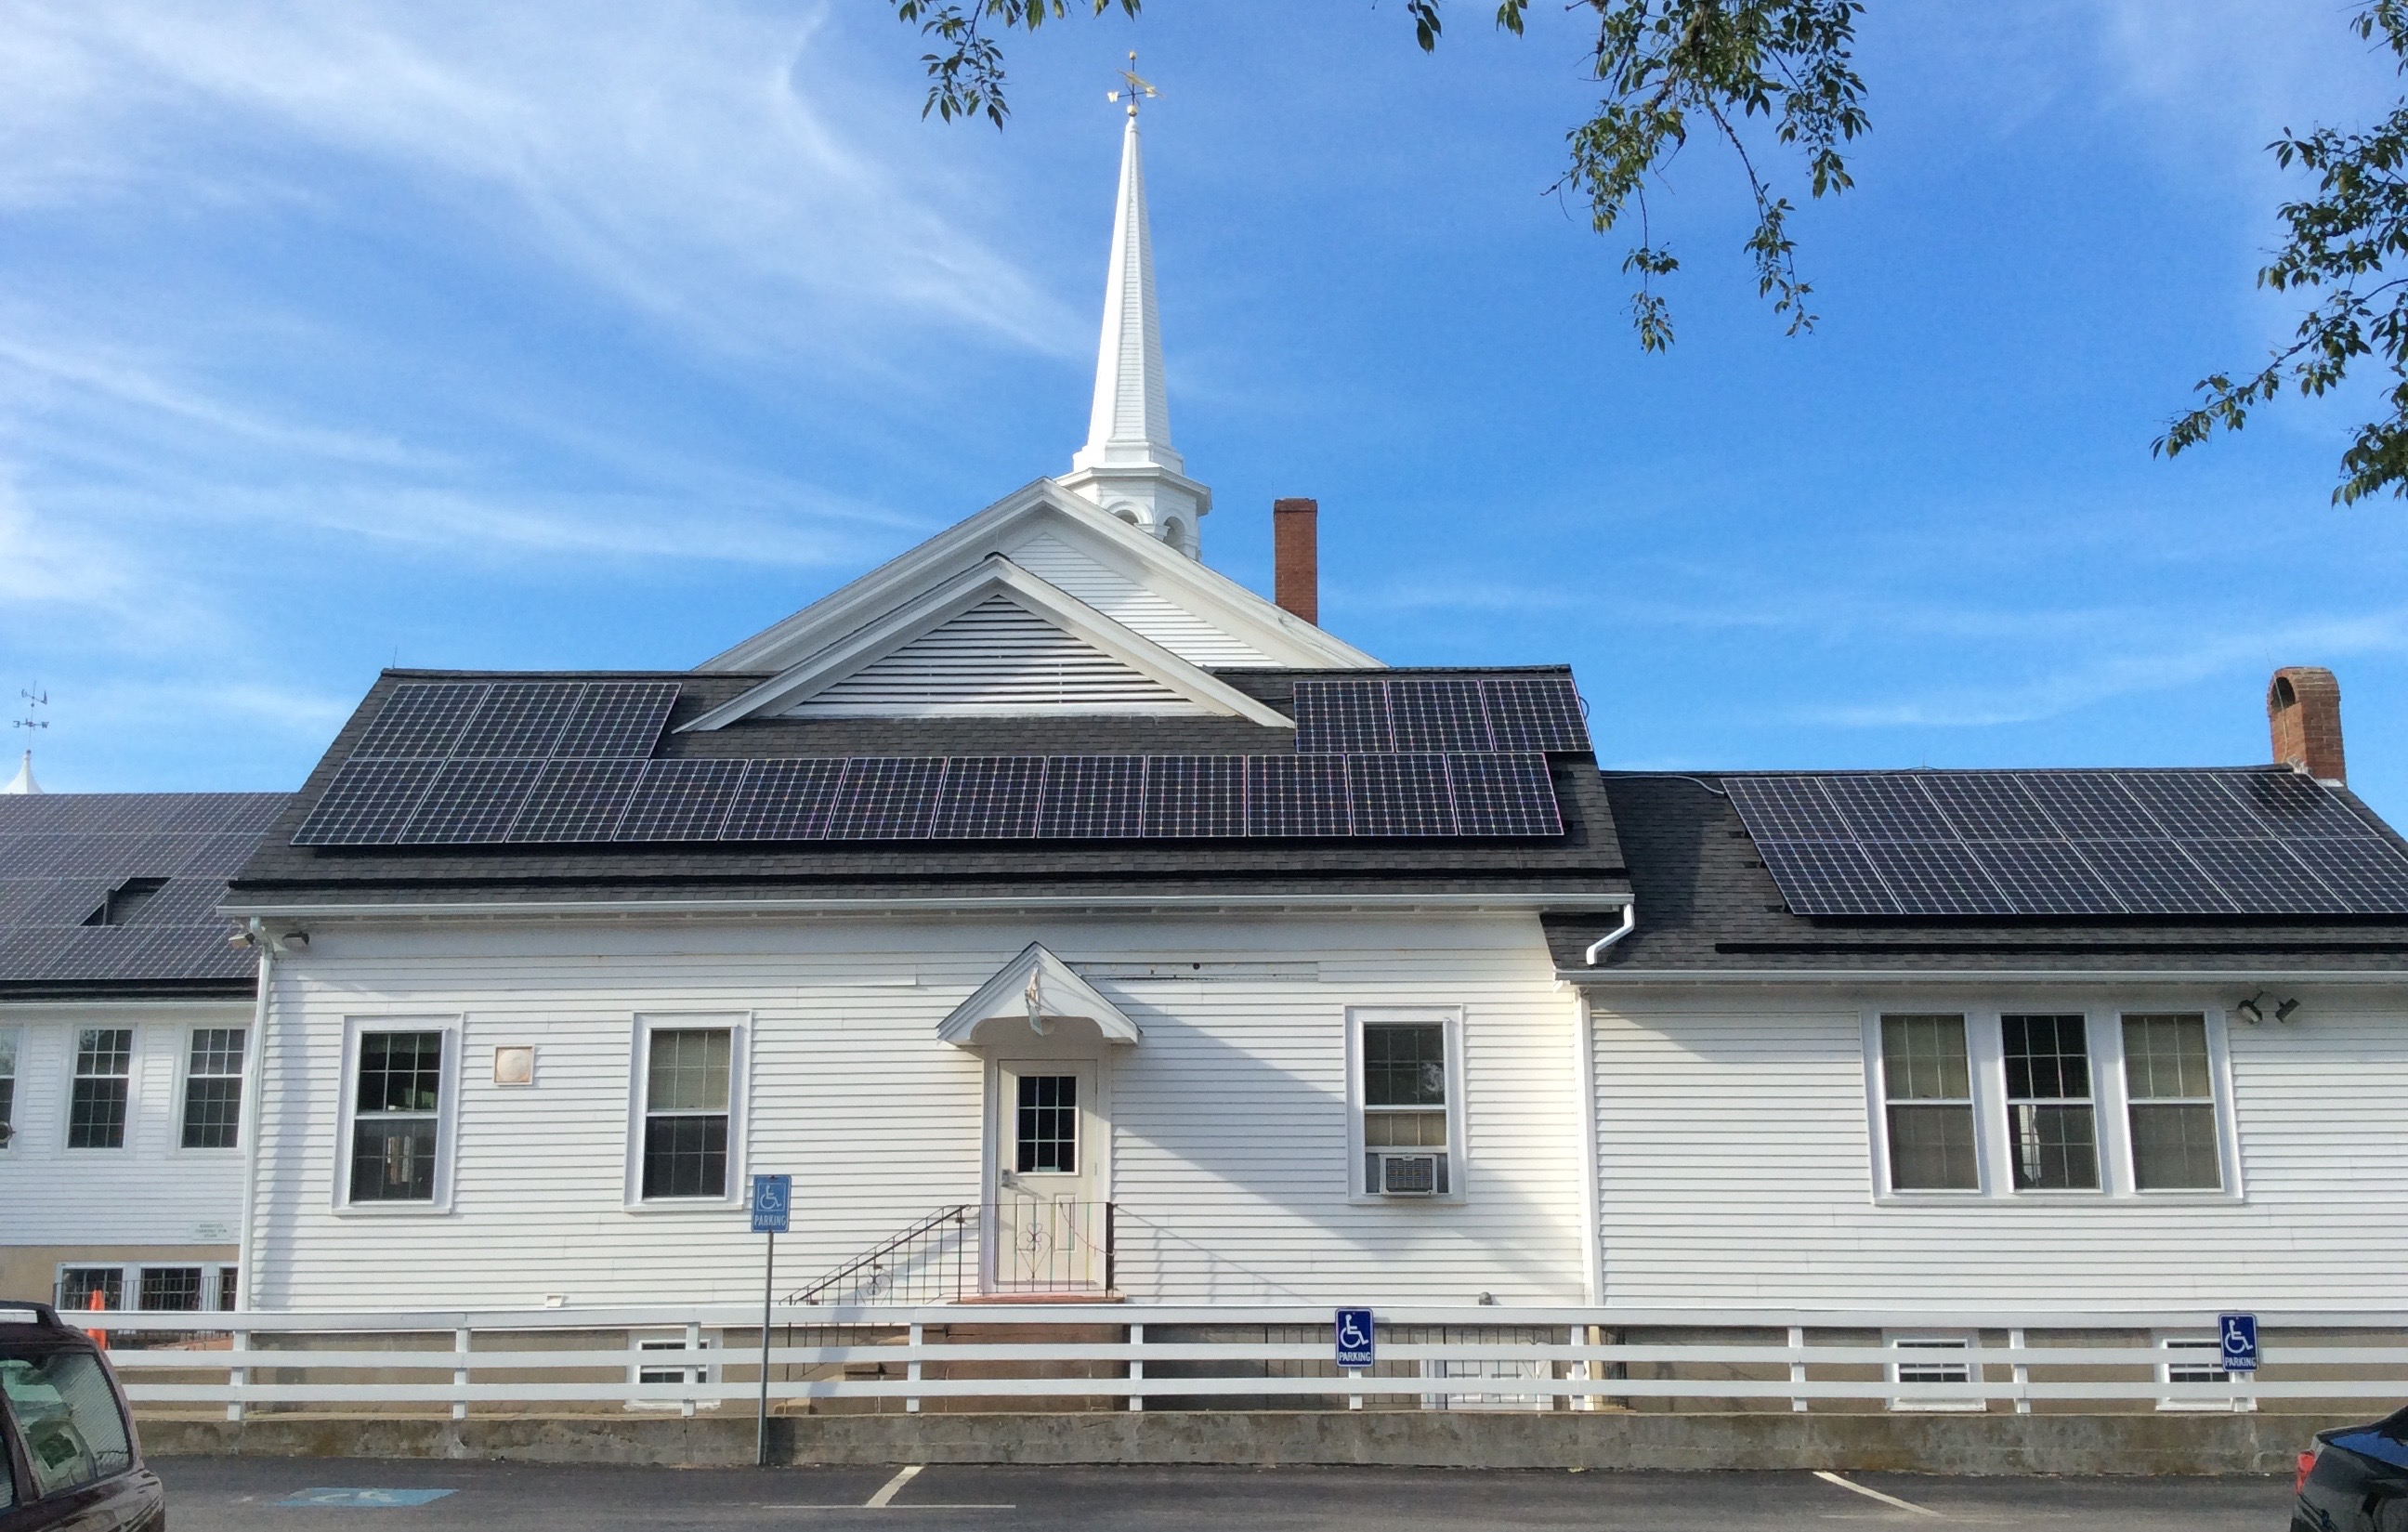 Commercial Solar Companies - Massachusetts | Call Today!